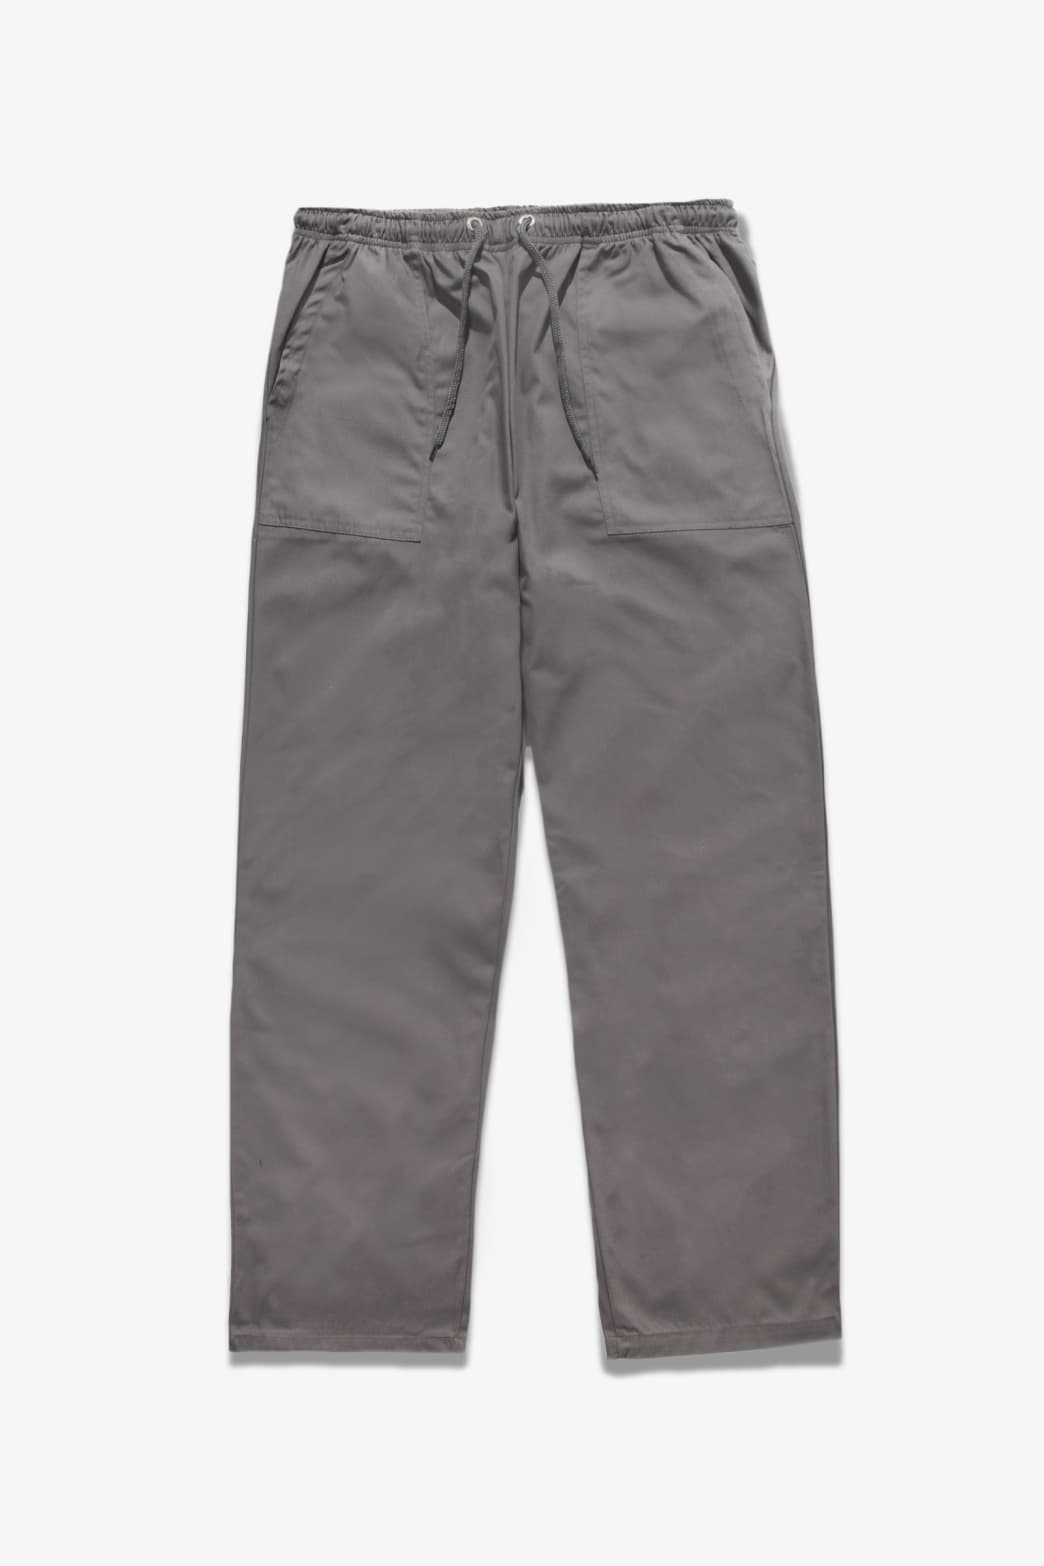 Service Works - Trade Chef Pants - Grey | Trousers by Service Works 4